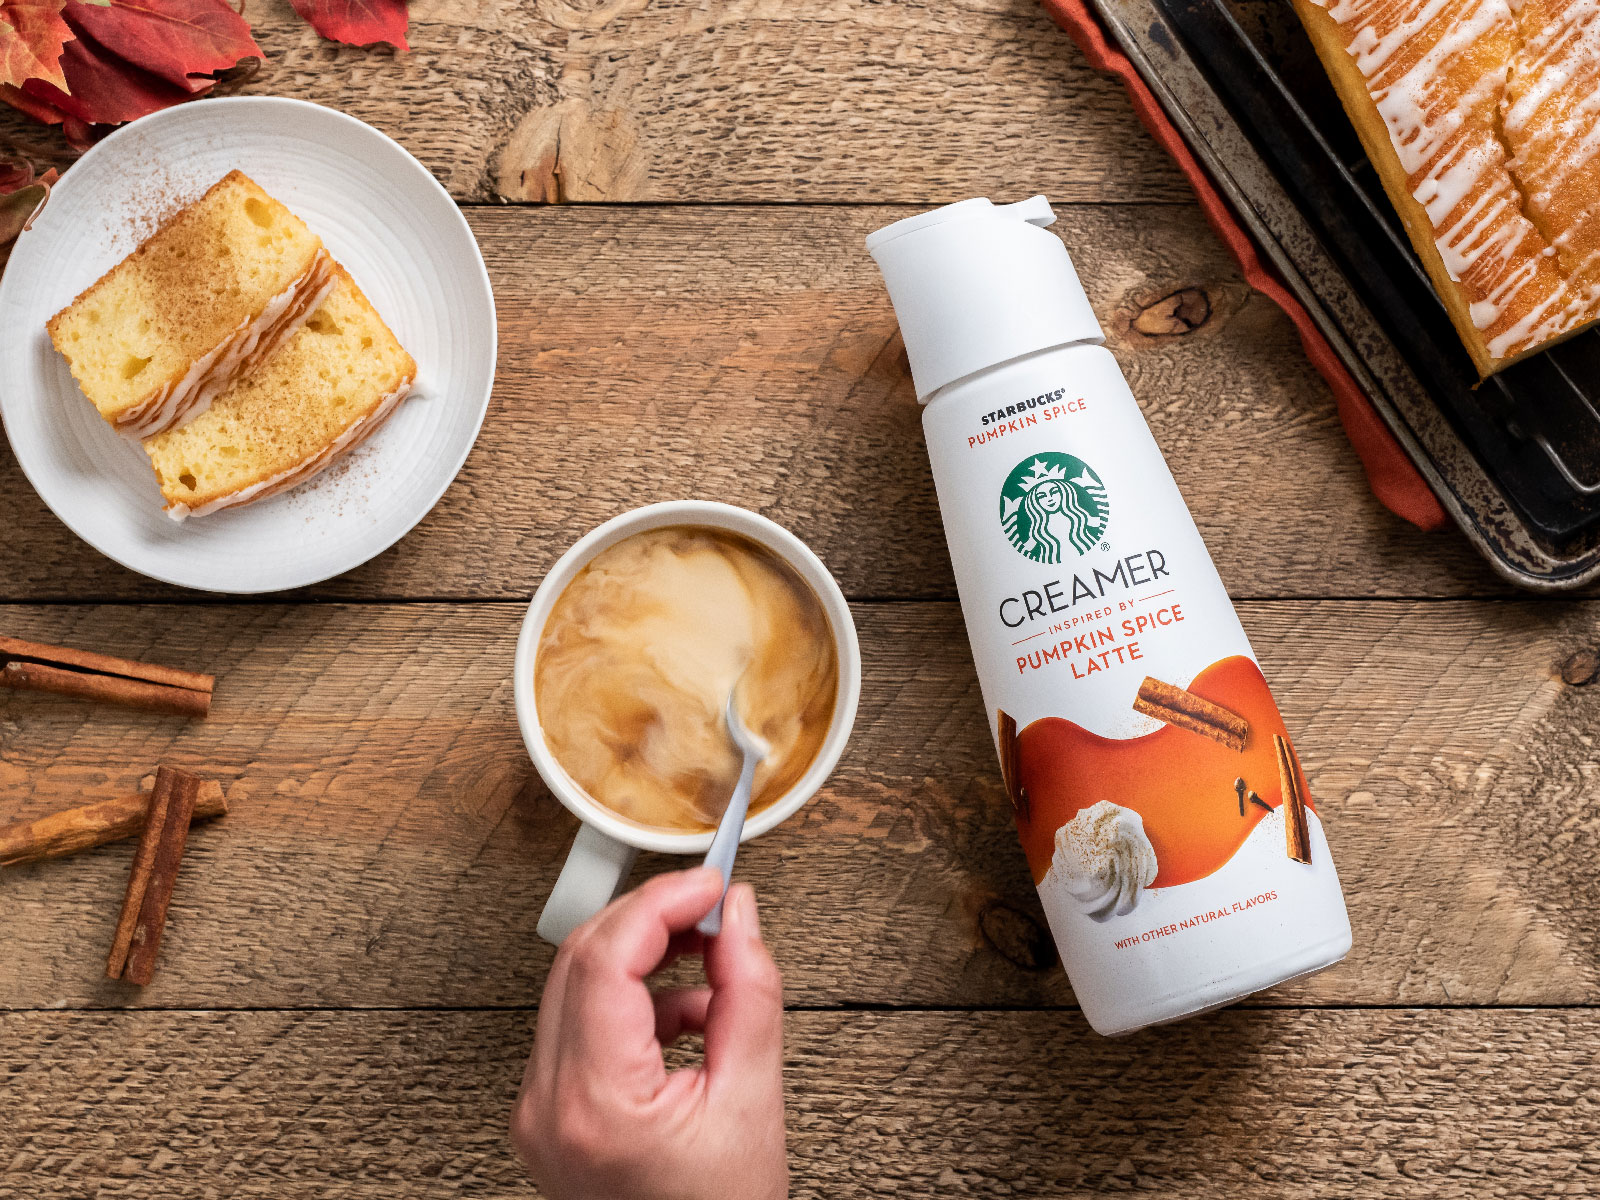 Starbucks Kicks Off PSL Season Early with New Pumpkin Spice Creamer